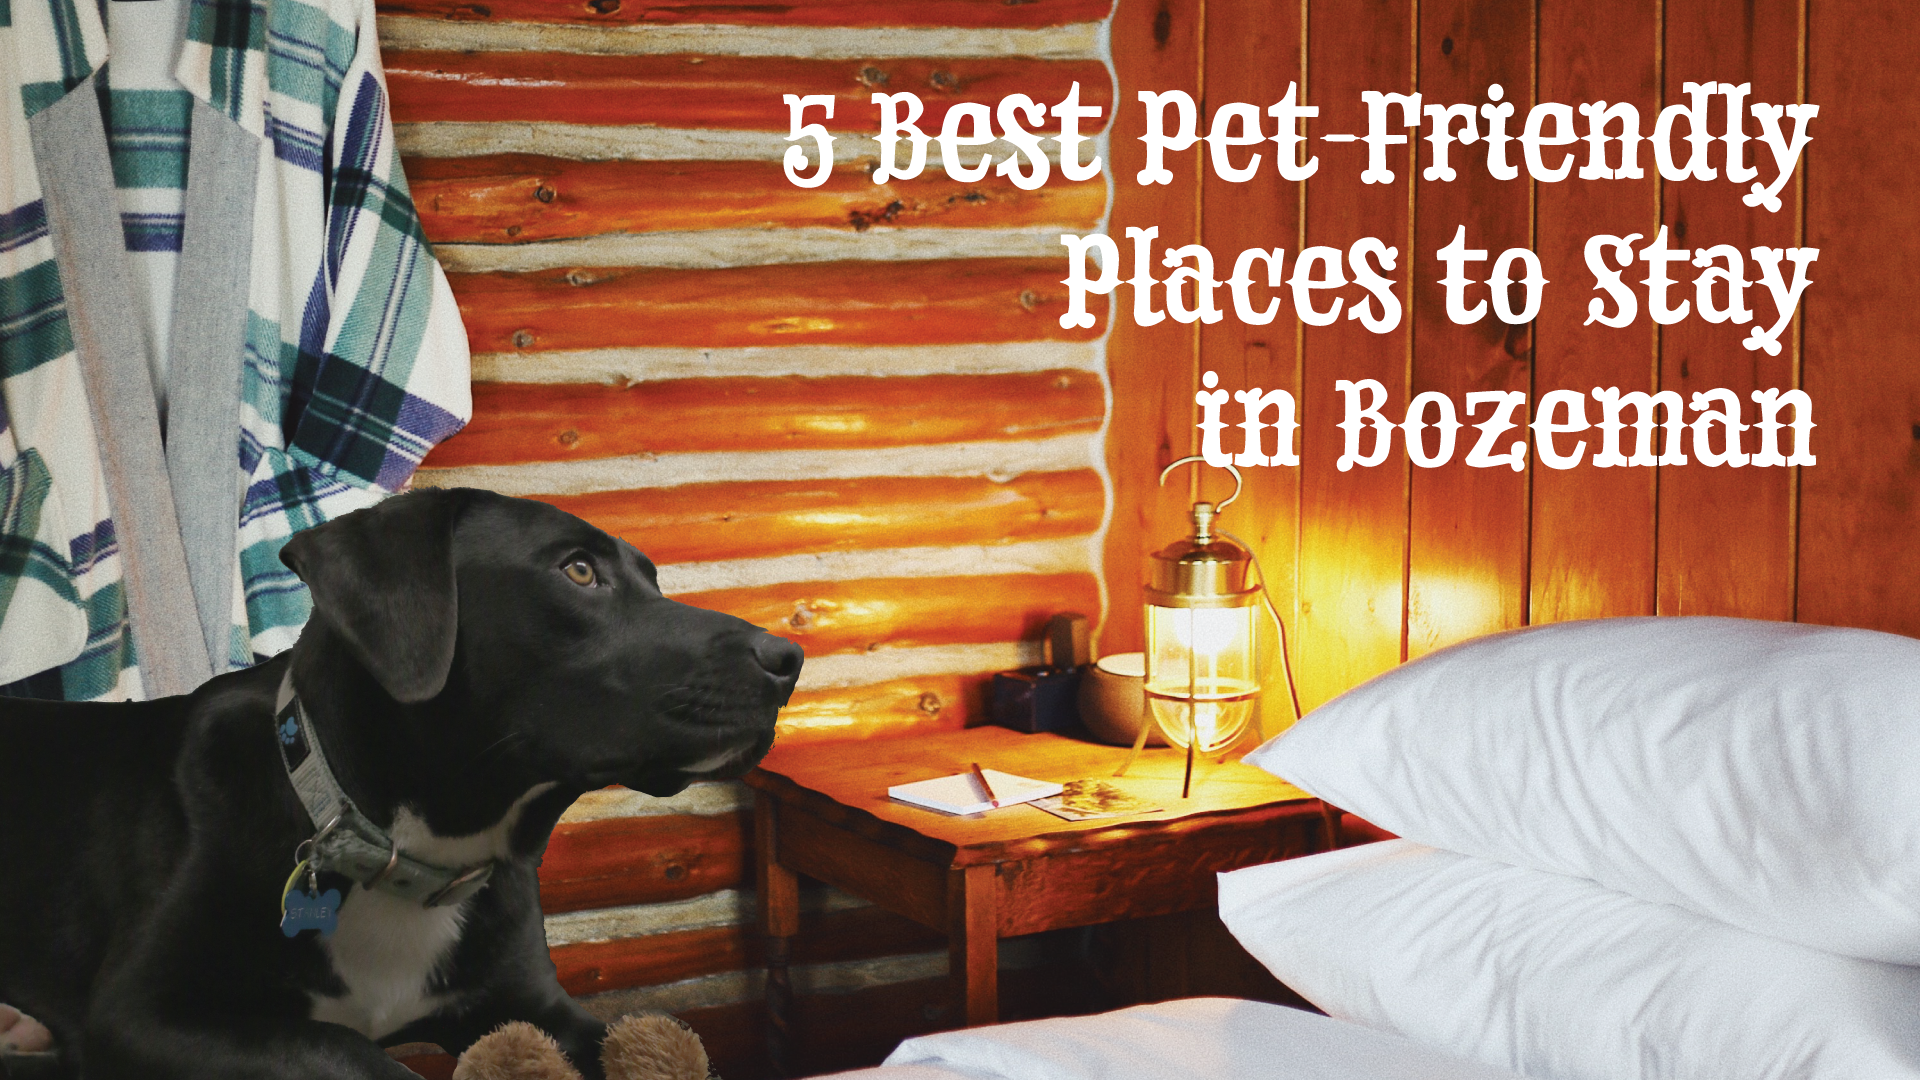 Pet-Friendly Places to Stay in Bozeman